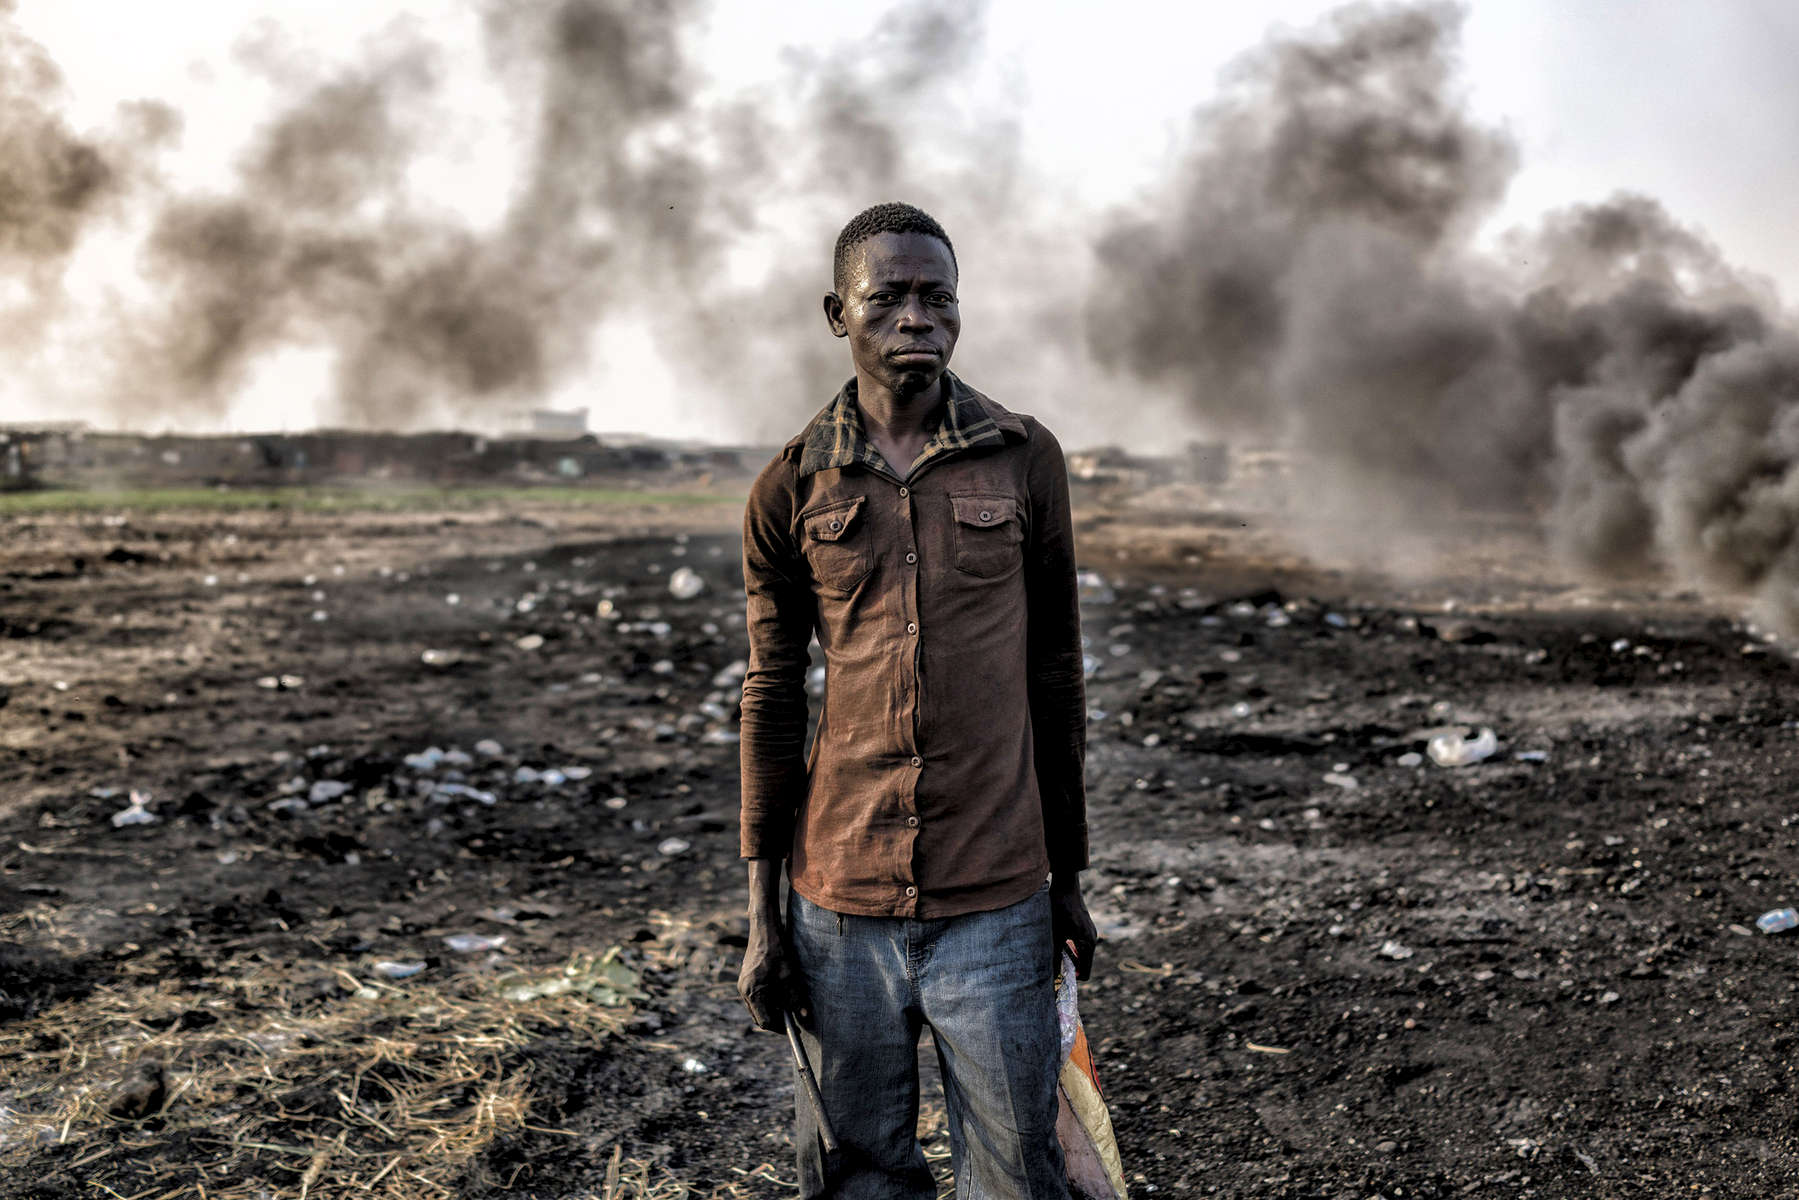 The Agbogbloshie dump's burning fields - where young men - almost all internal migrants from Ghana's northern Tamale region - toil in toxic smoke, burning down manufactured parts into their basic copper components hoping to make a slim income to feed themselves each day.